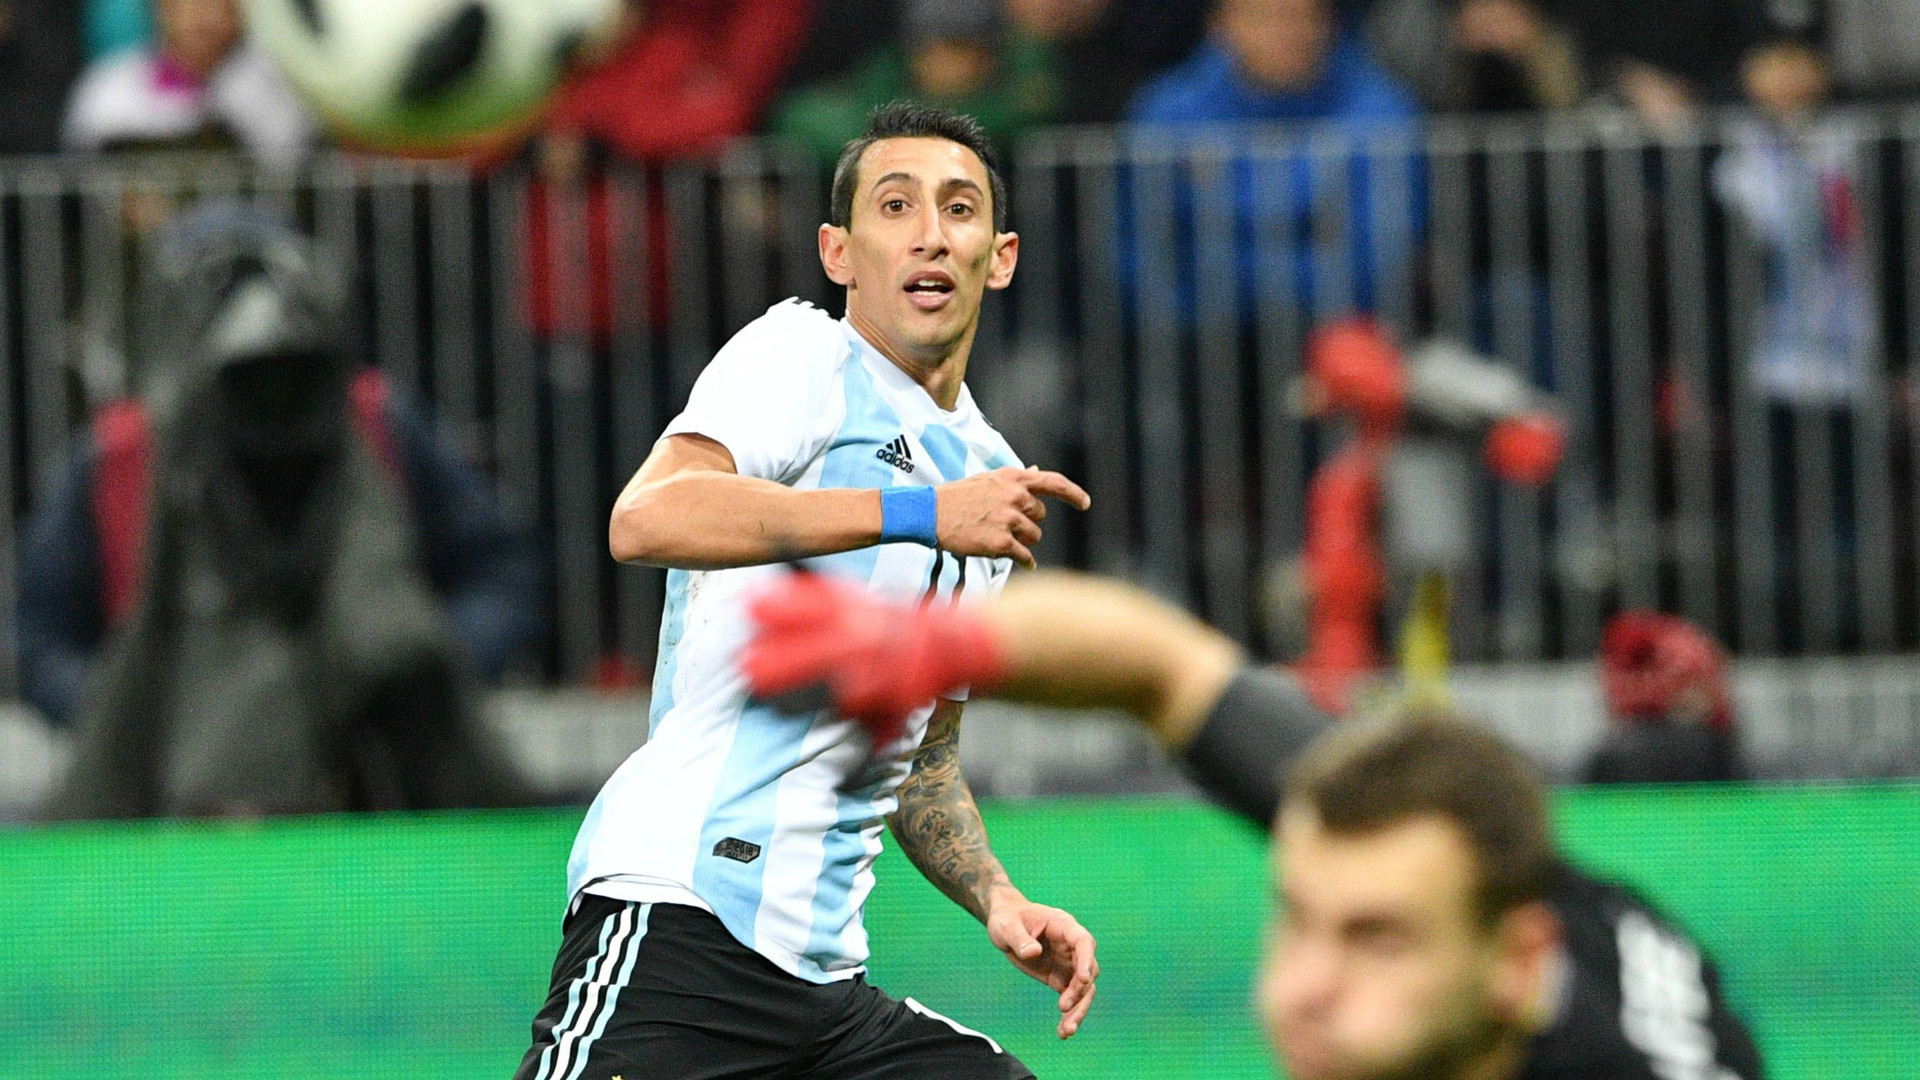 Sergio Aguero hospitalised following Argentina's 4-2 loss to Nigeria